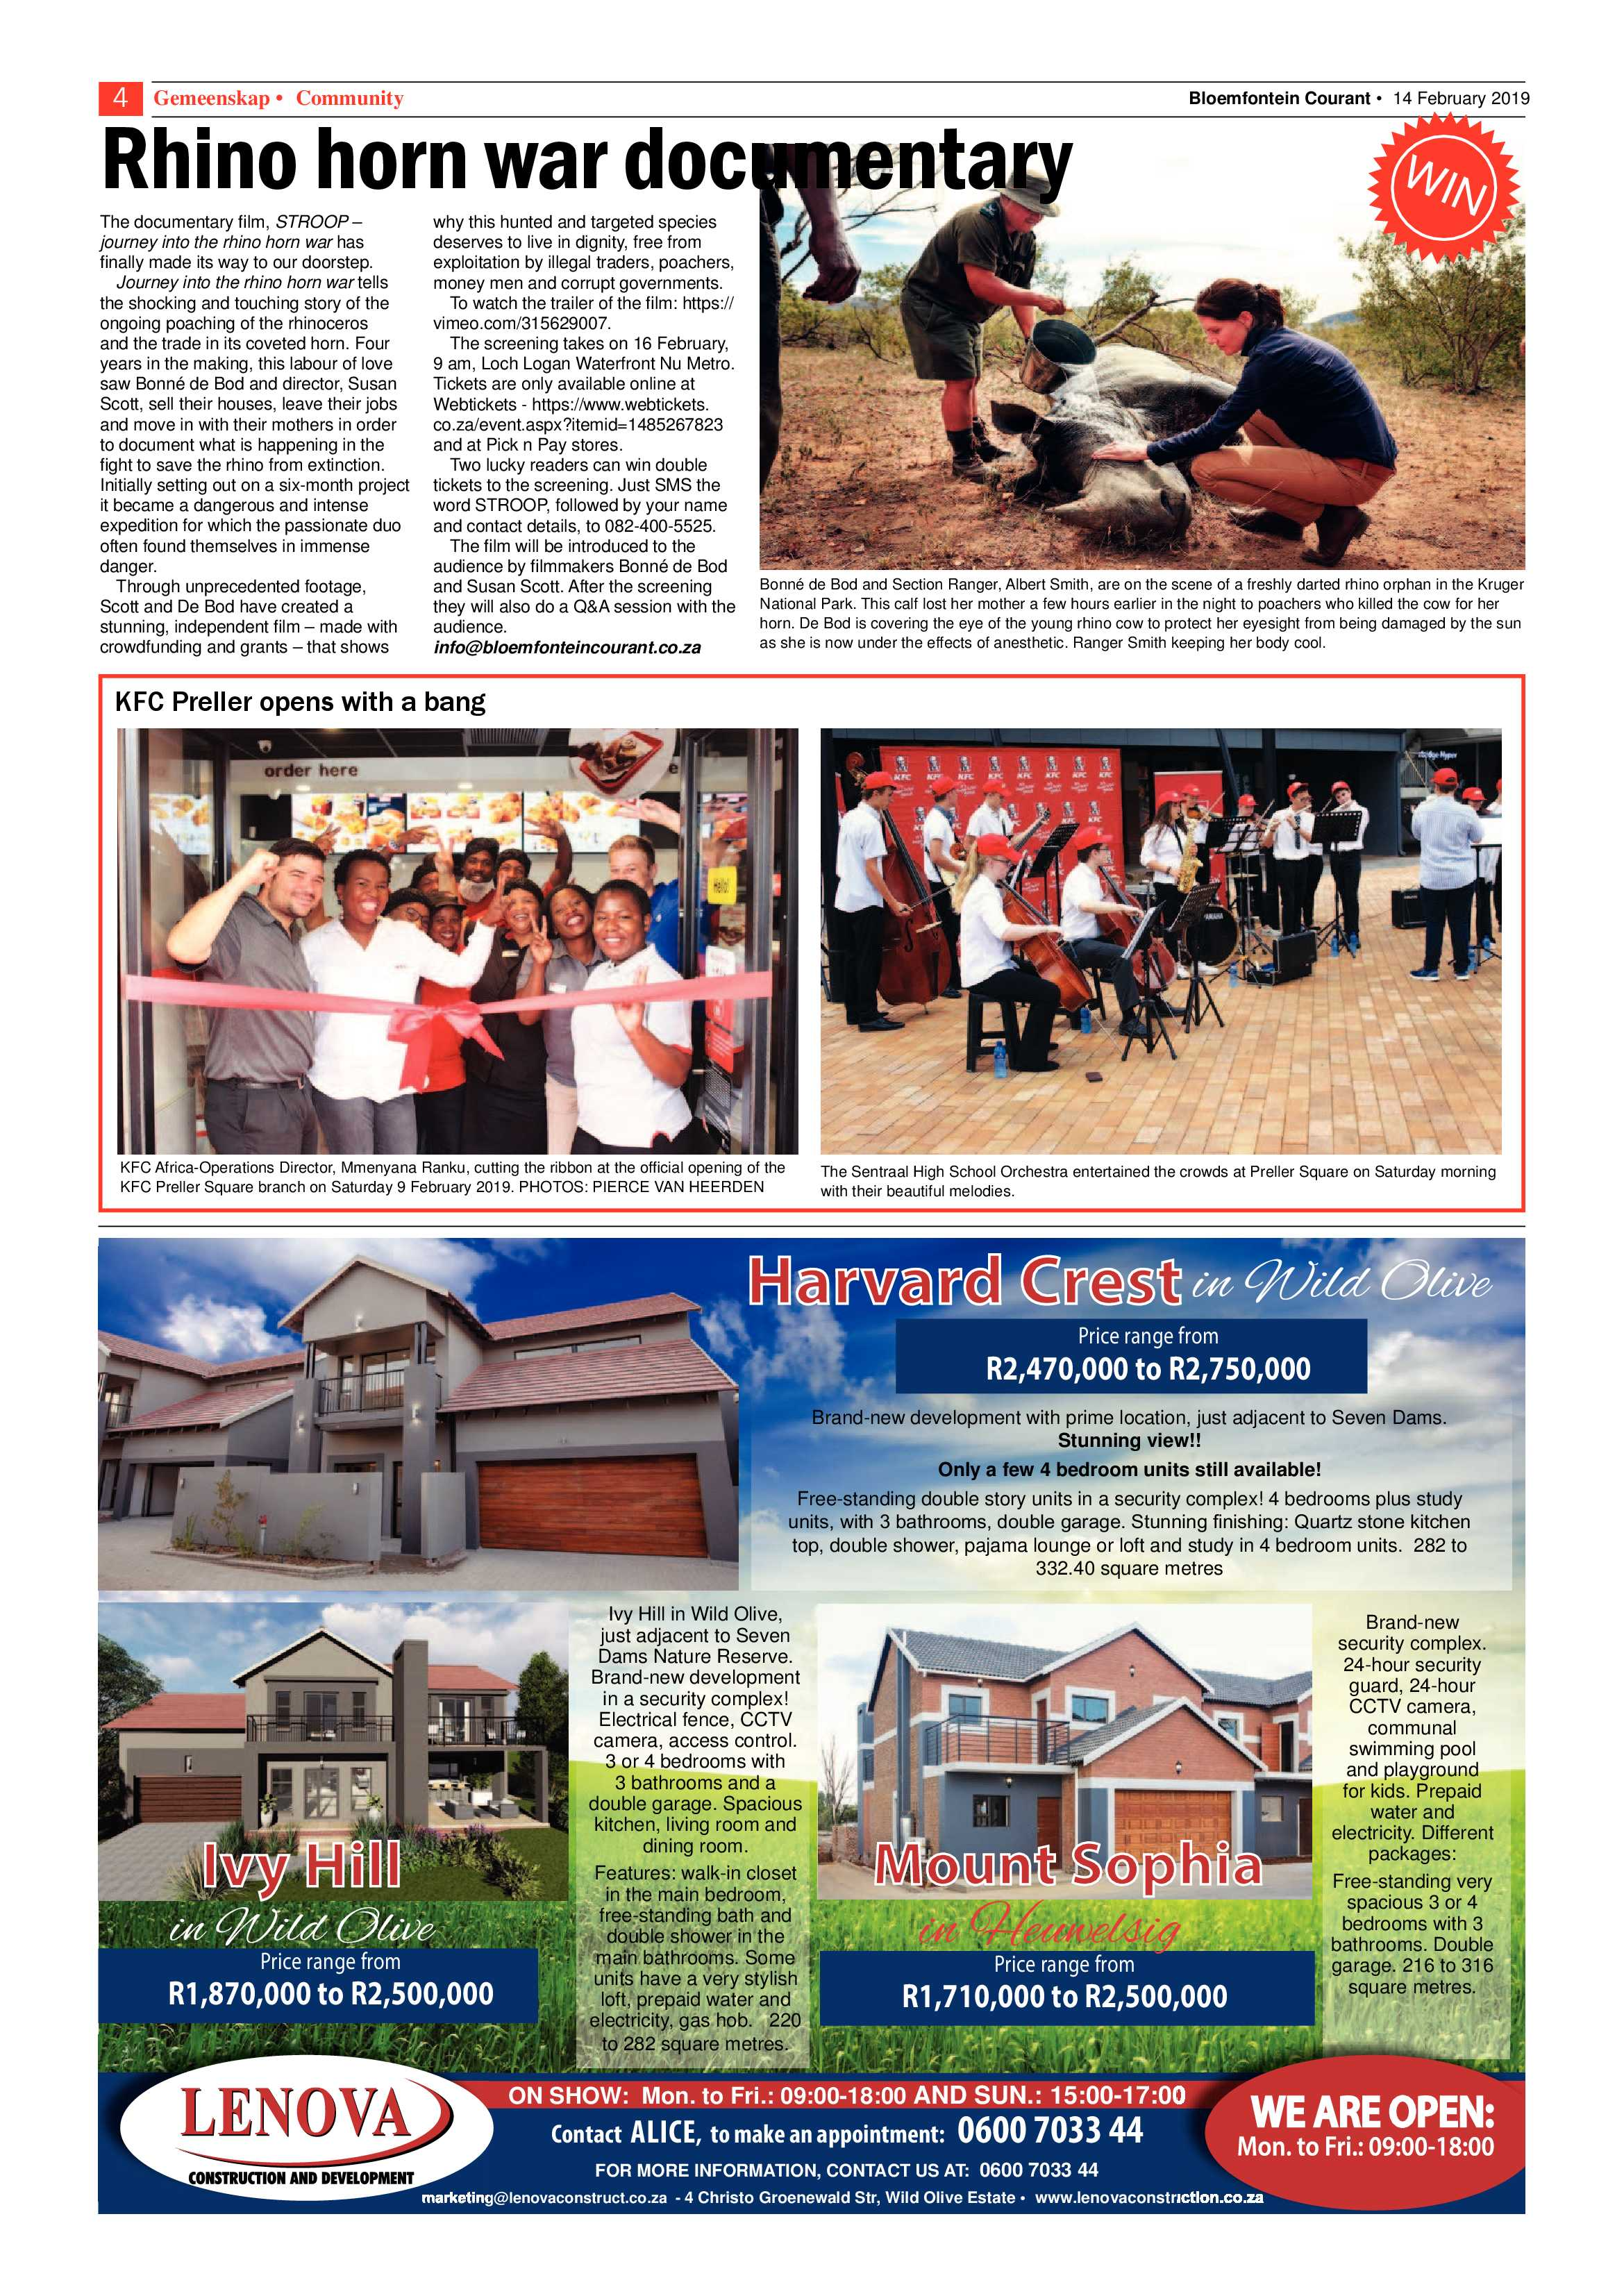 courant-14-february-2019-epapers-page-4